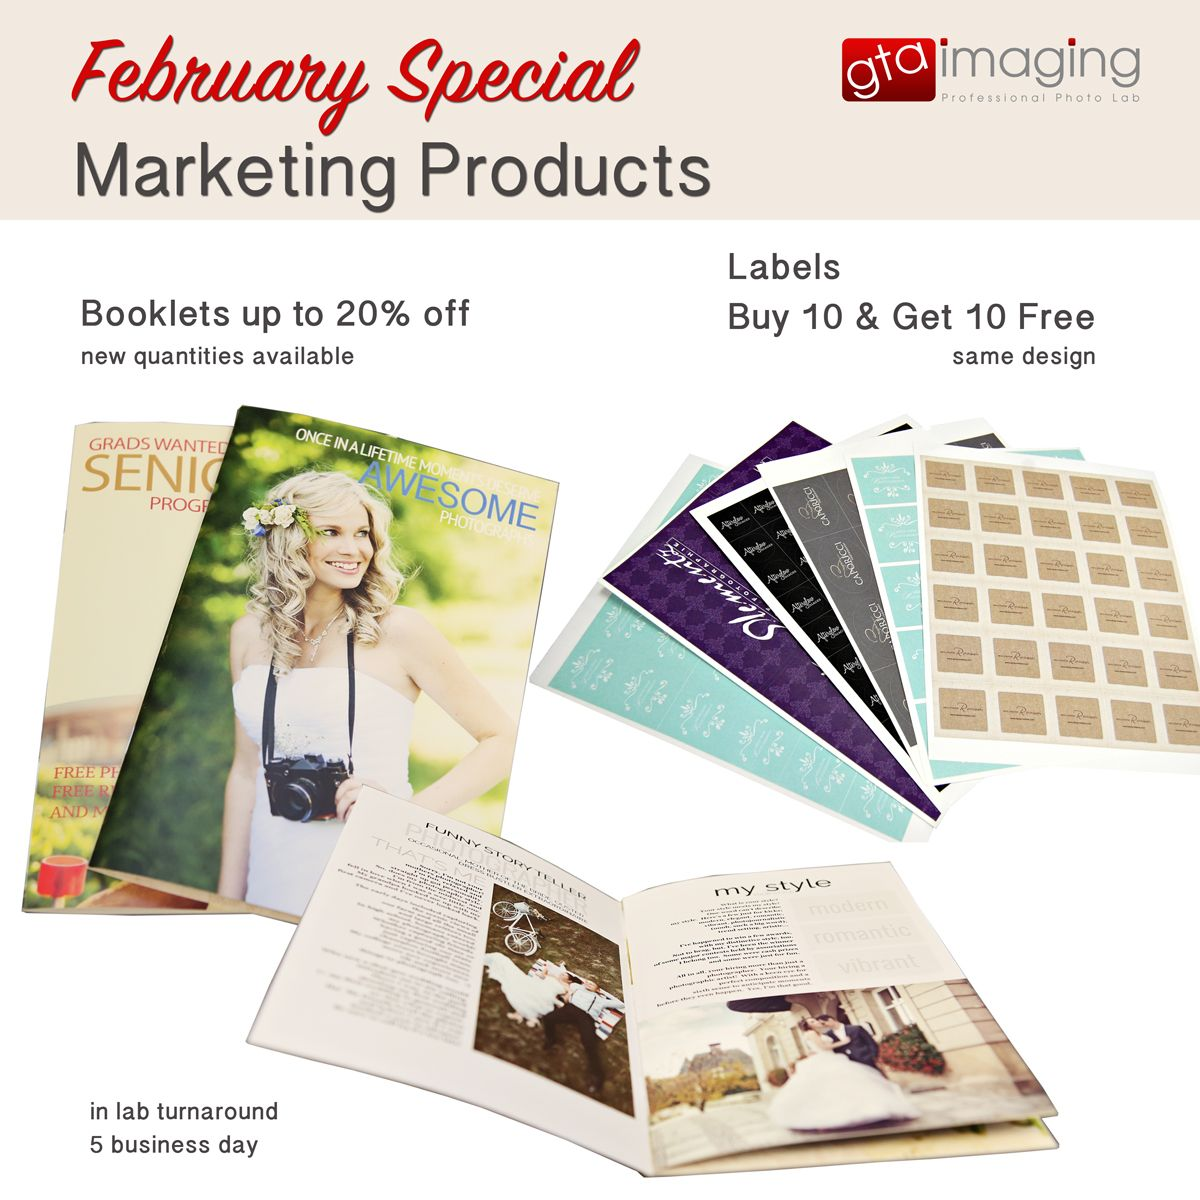 February Special 2015 Booklet, Posing guide, Book cover